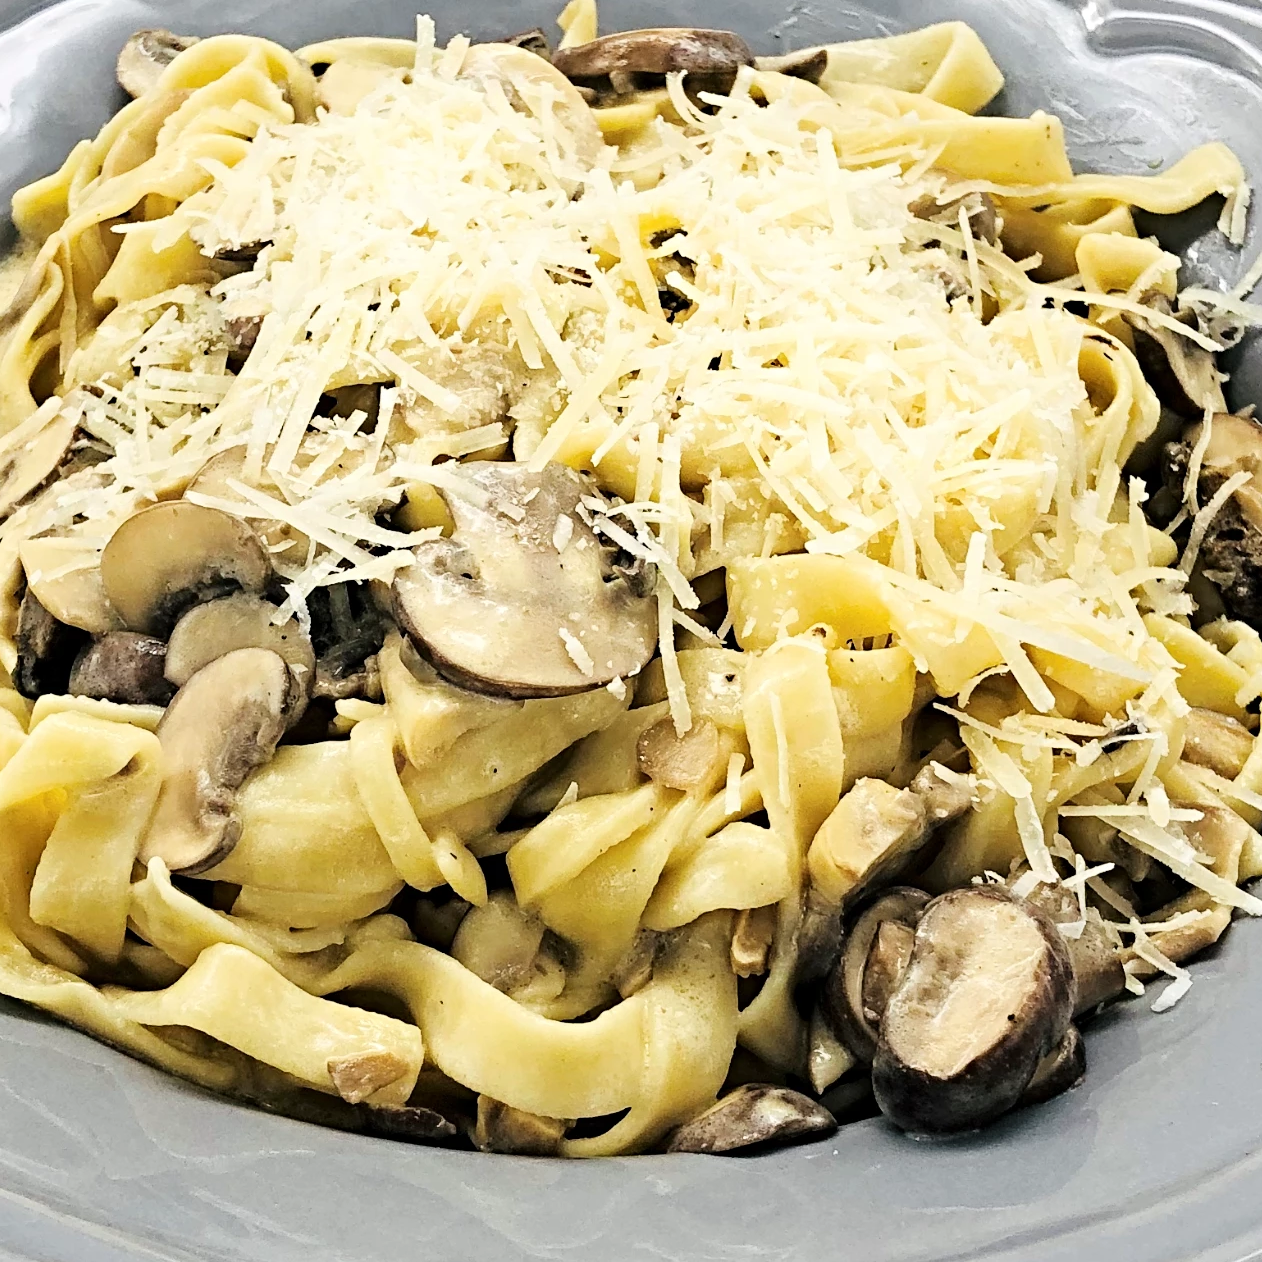 Familychef 20' Fresh Fettuccine With Mushrooms & Cream plate